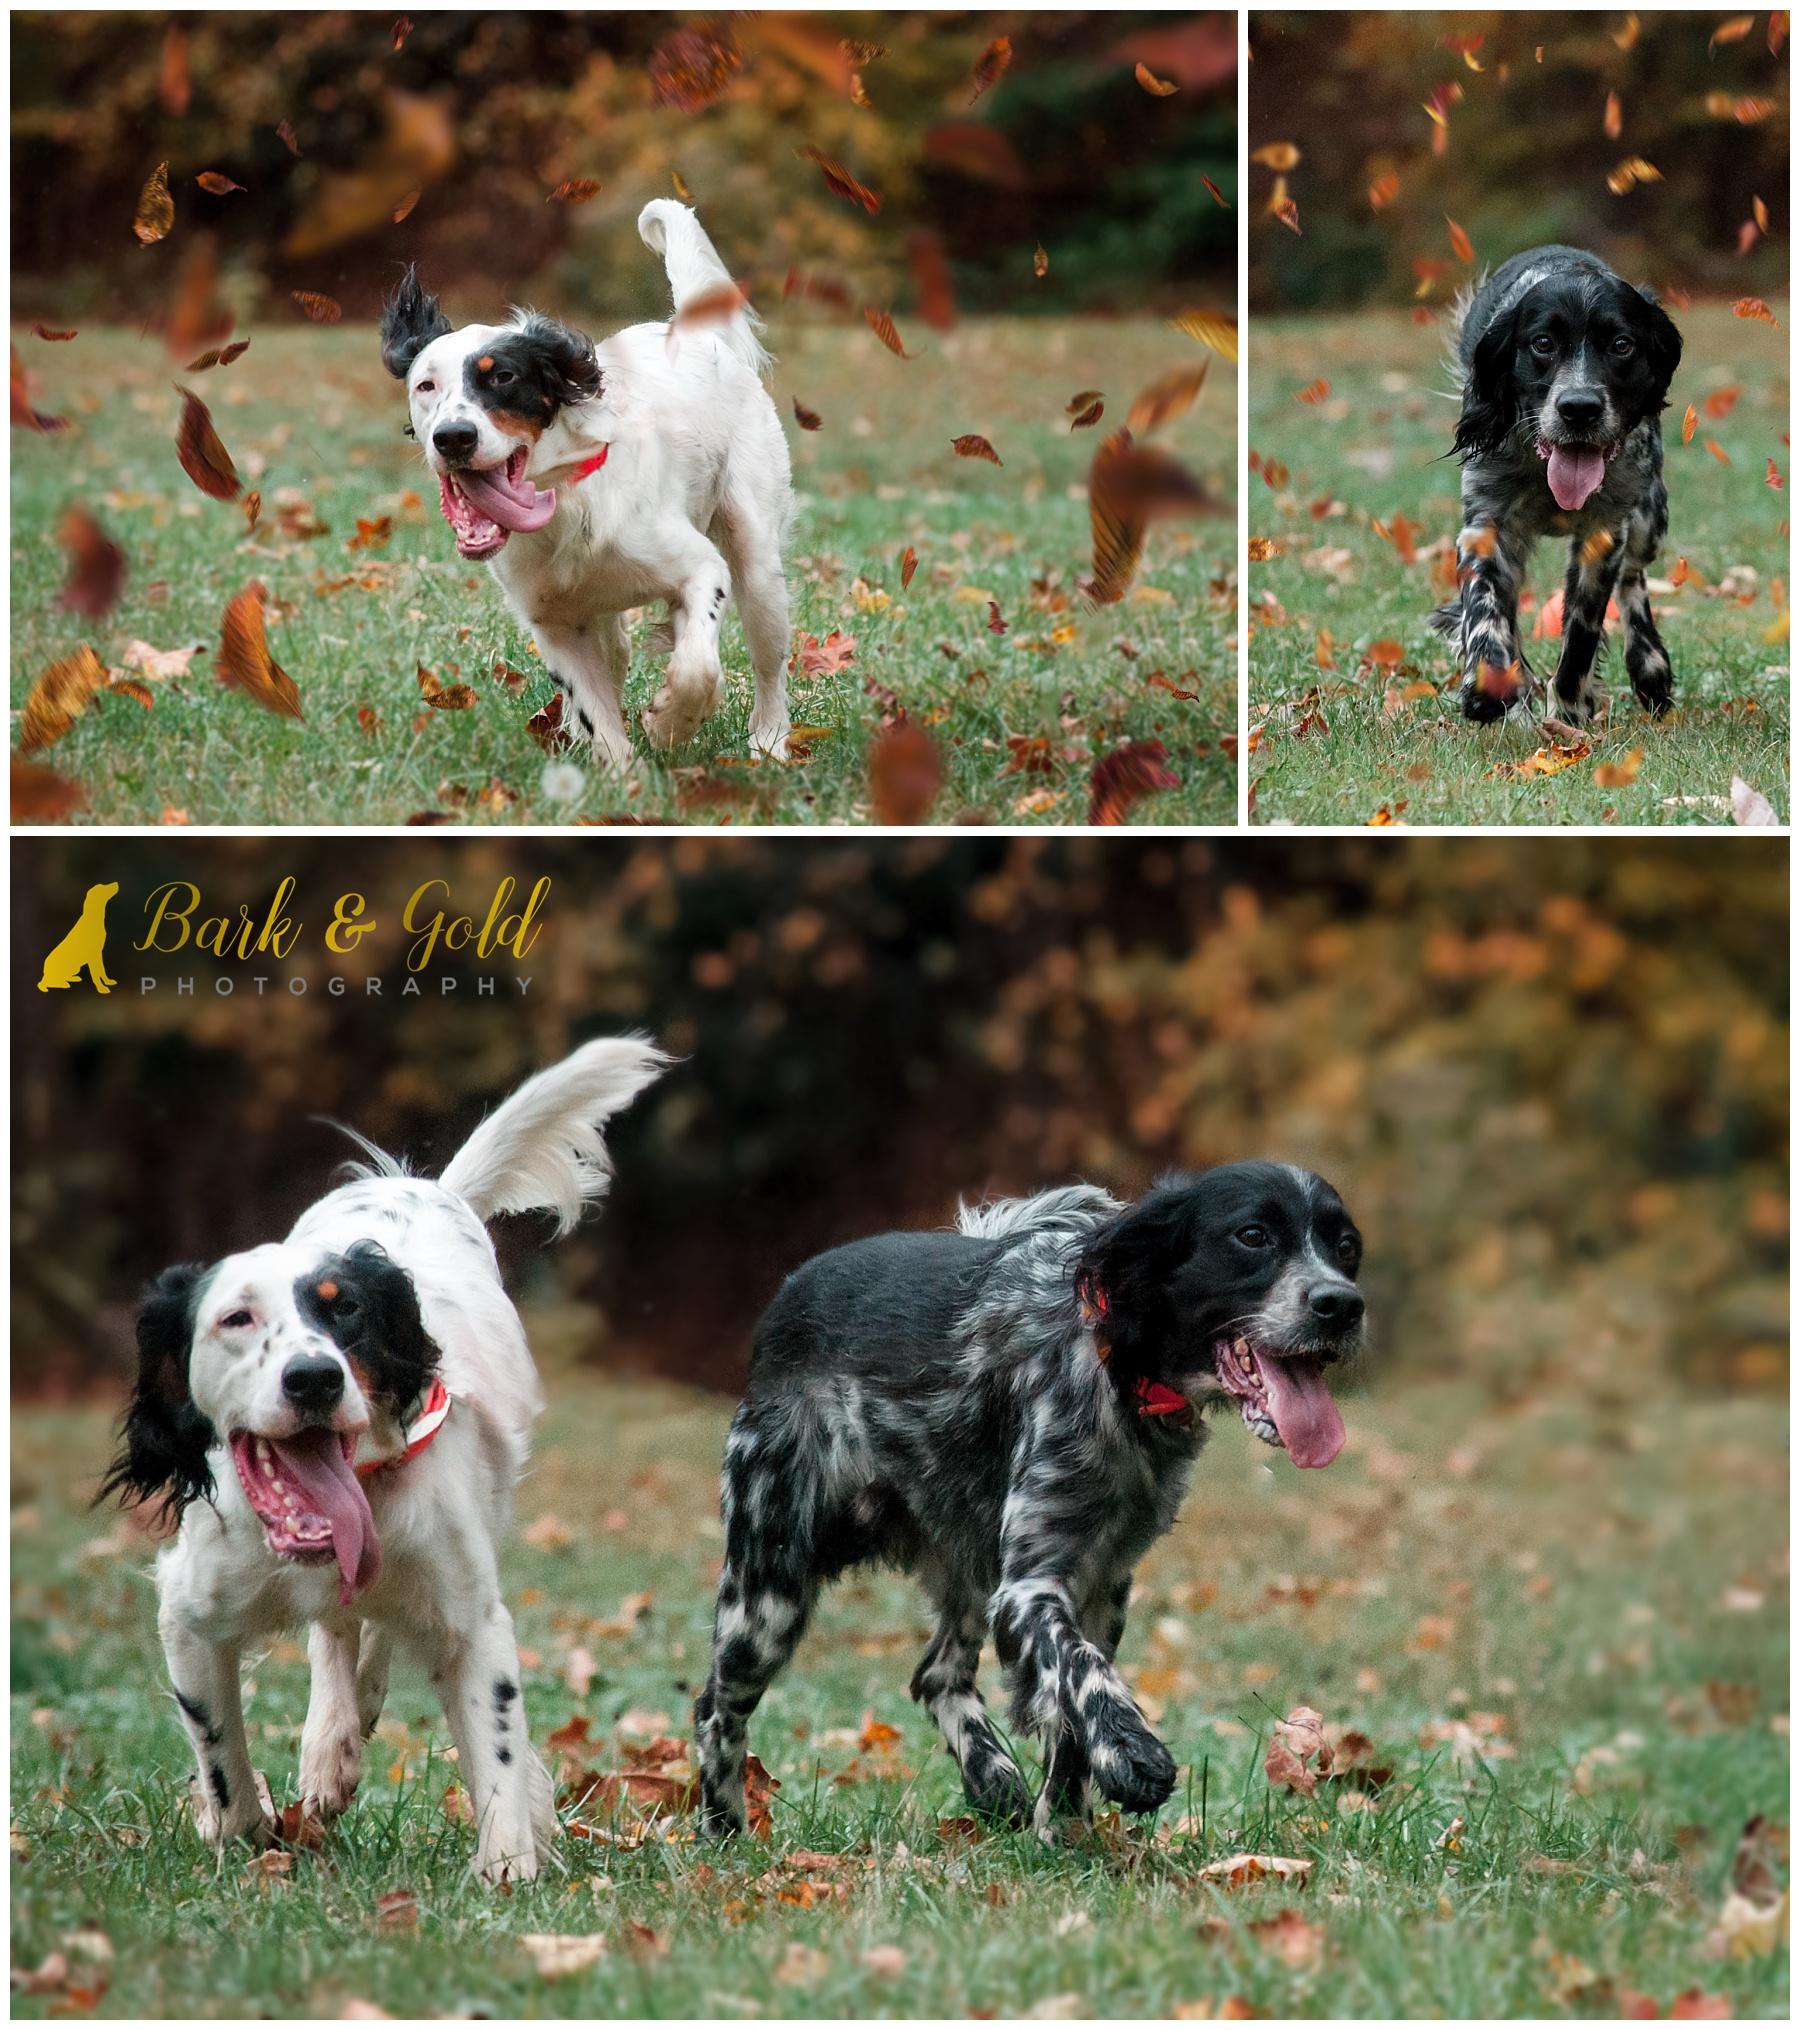 English Setters run among falling leaves at Brady's Run Park in Beaver County